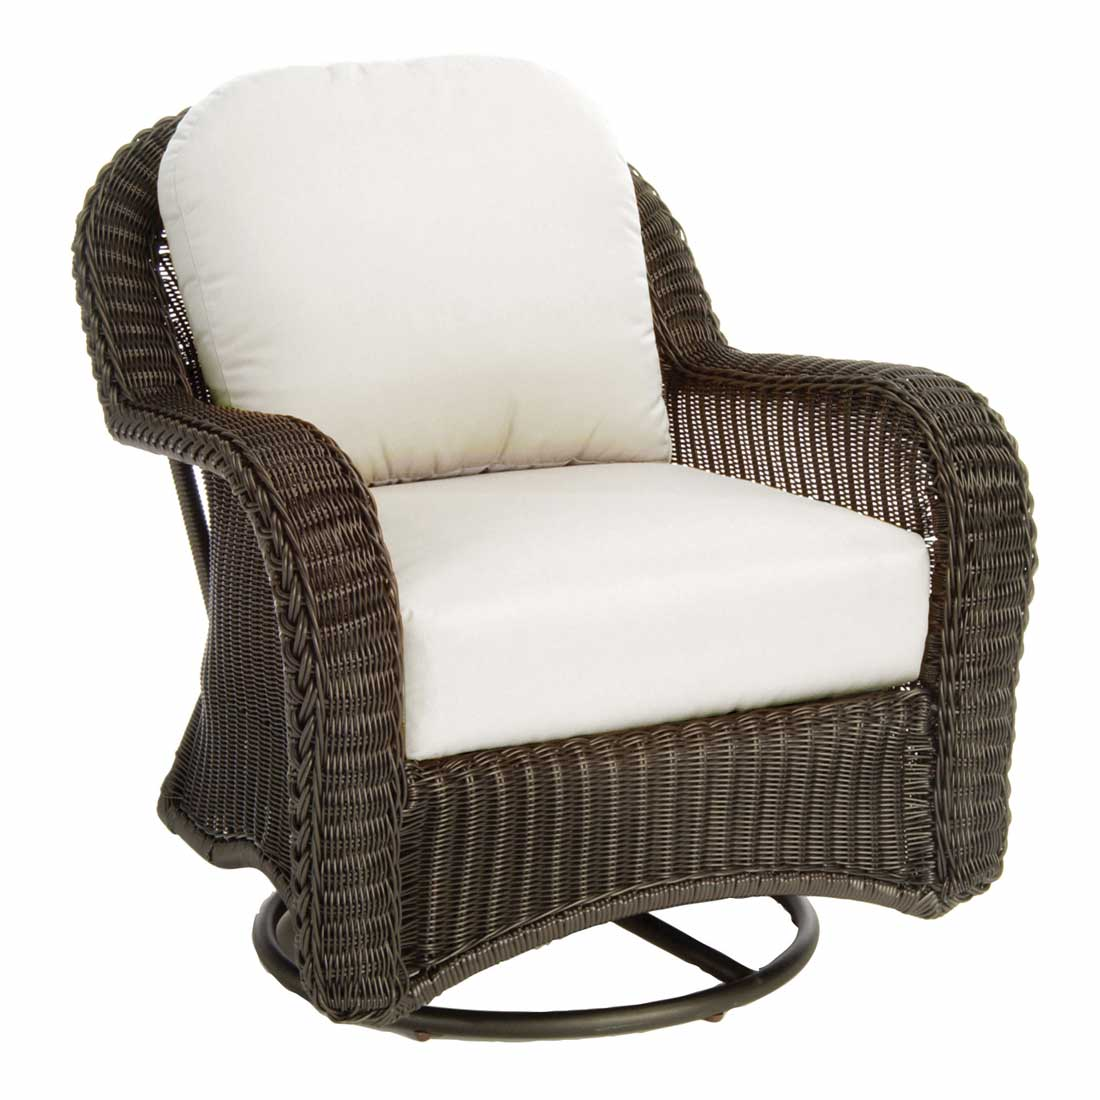 Clic Wicker Swivel Glider